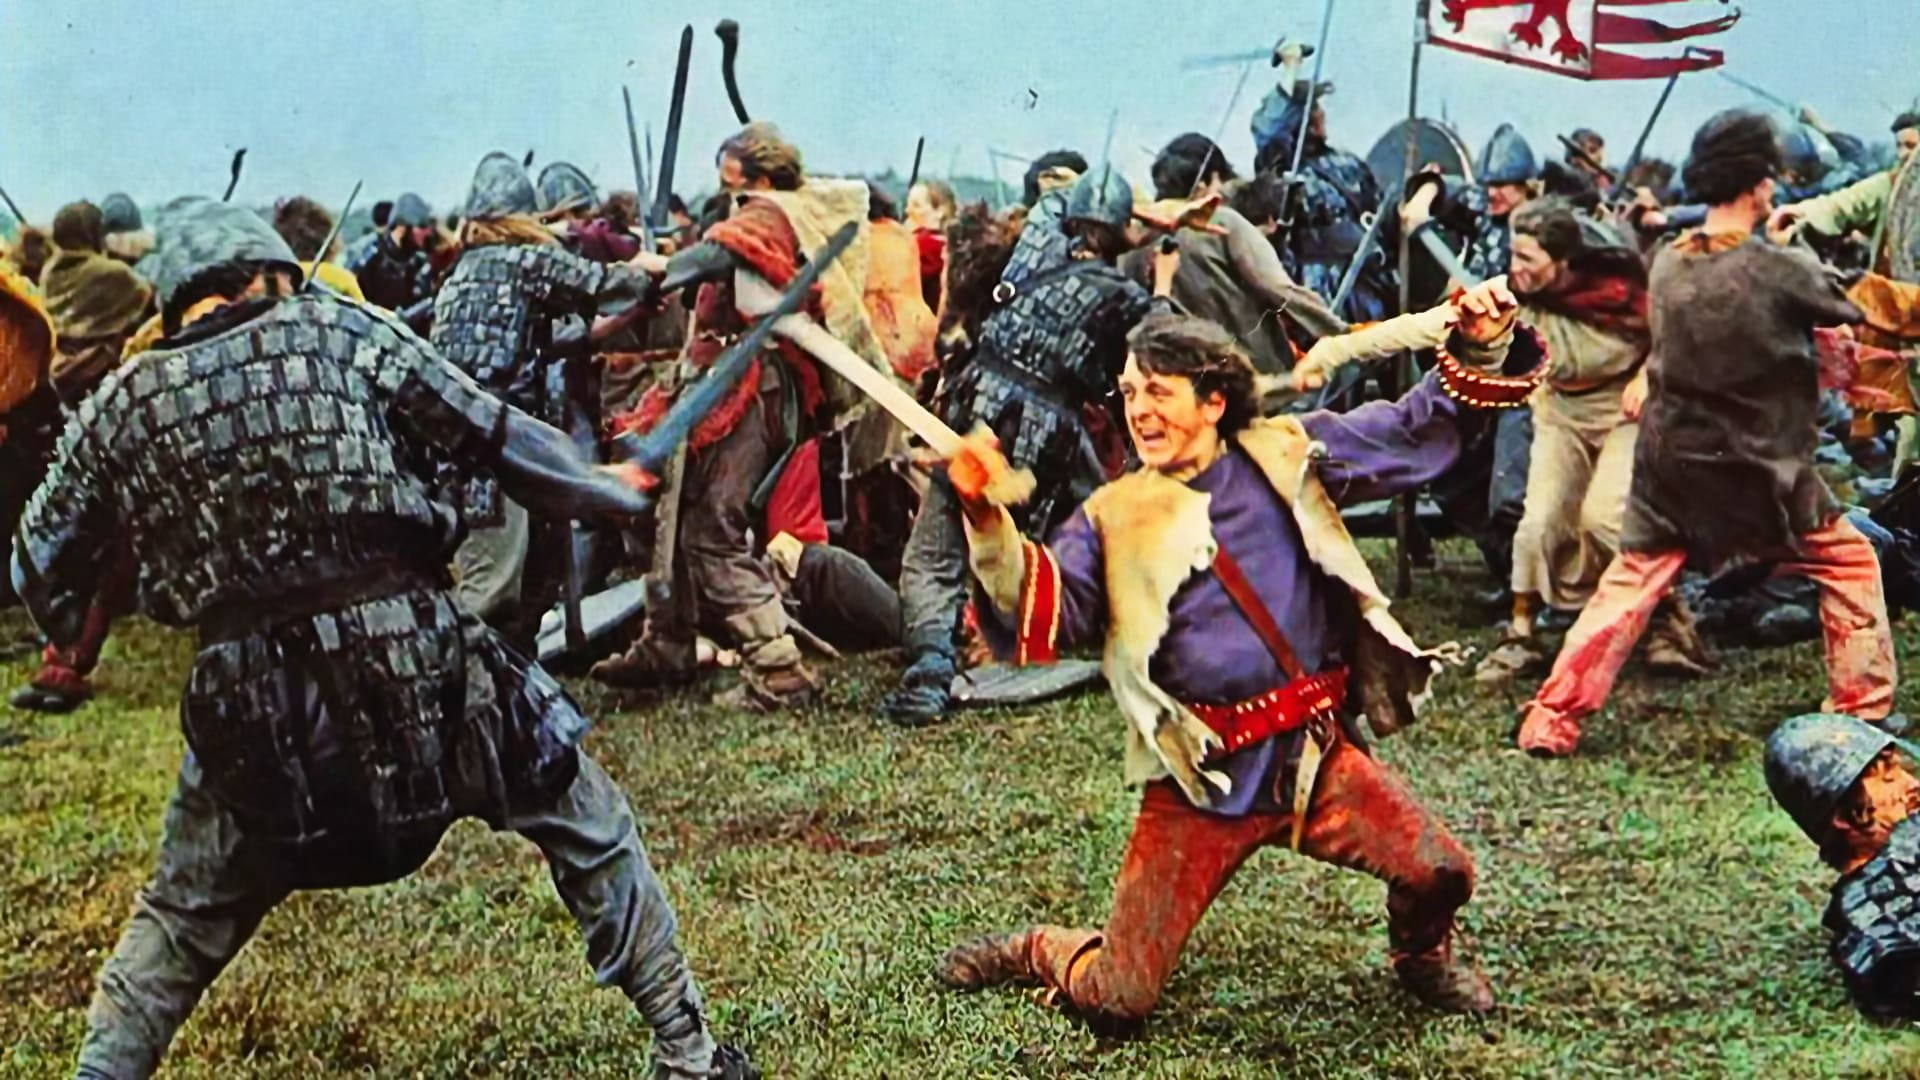 Alfred The Great Film Fight Scene - Visit Galway